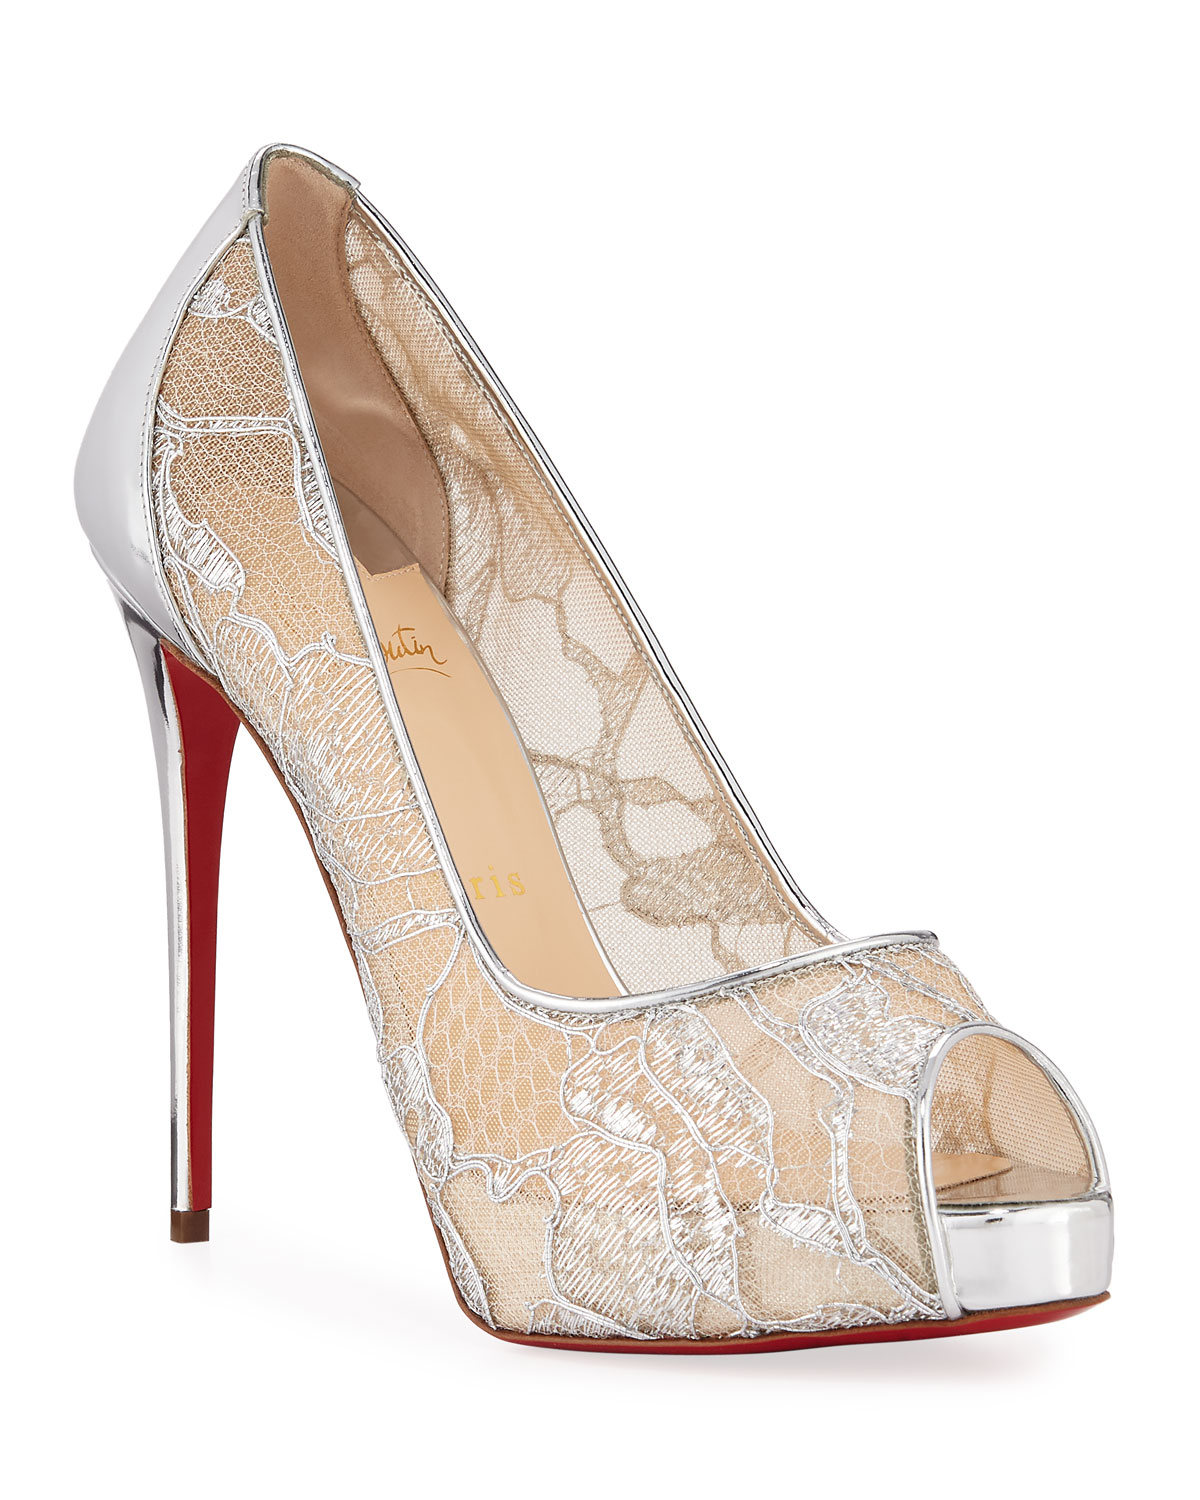 d0c59893d72e Christian Louboutin Very Lace 120mm Metallic Peep-Toe Red Sole Pumps ...